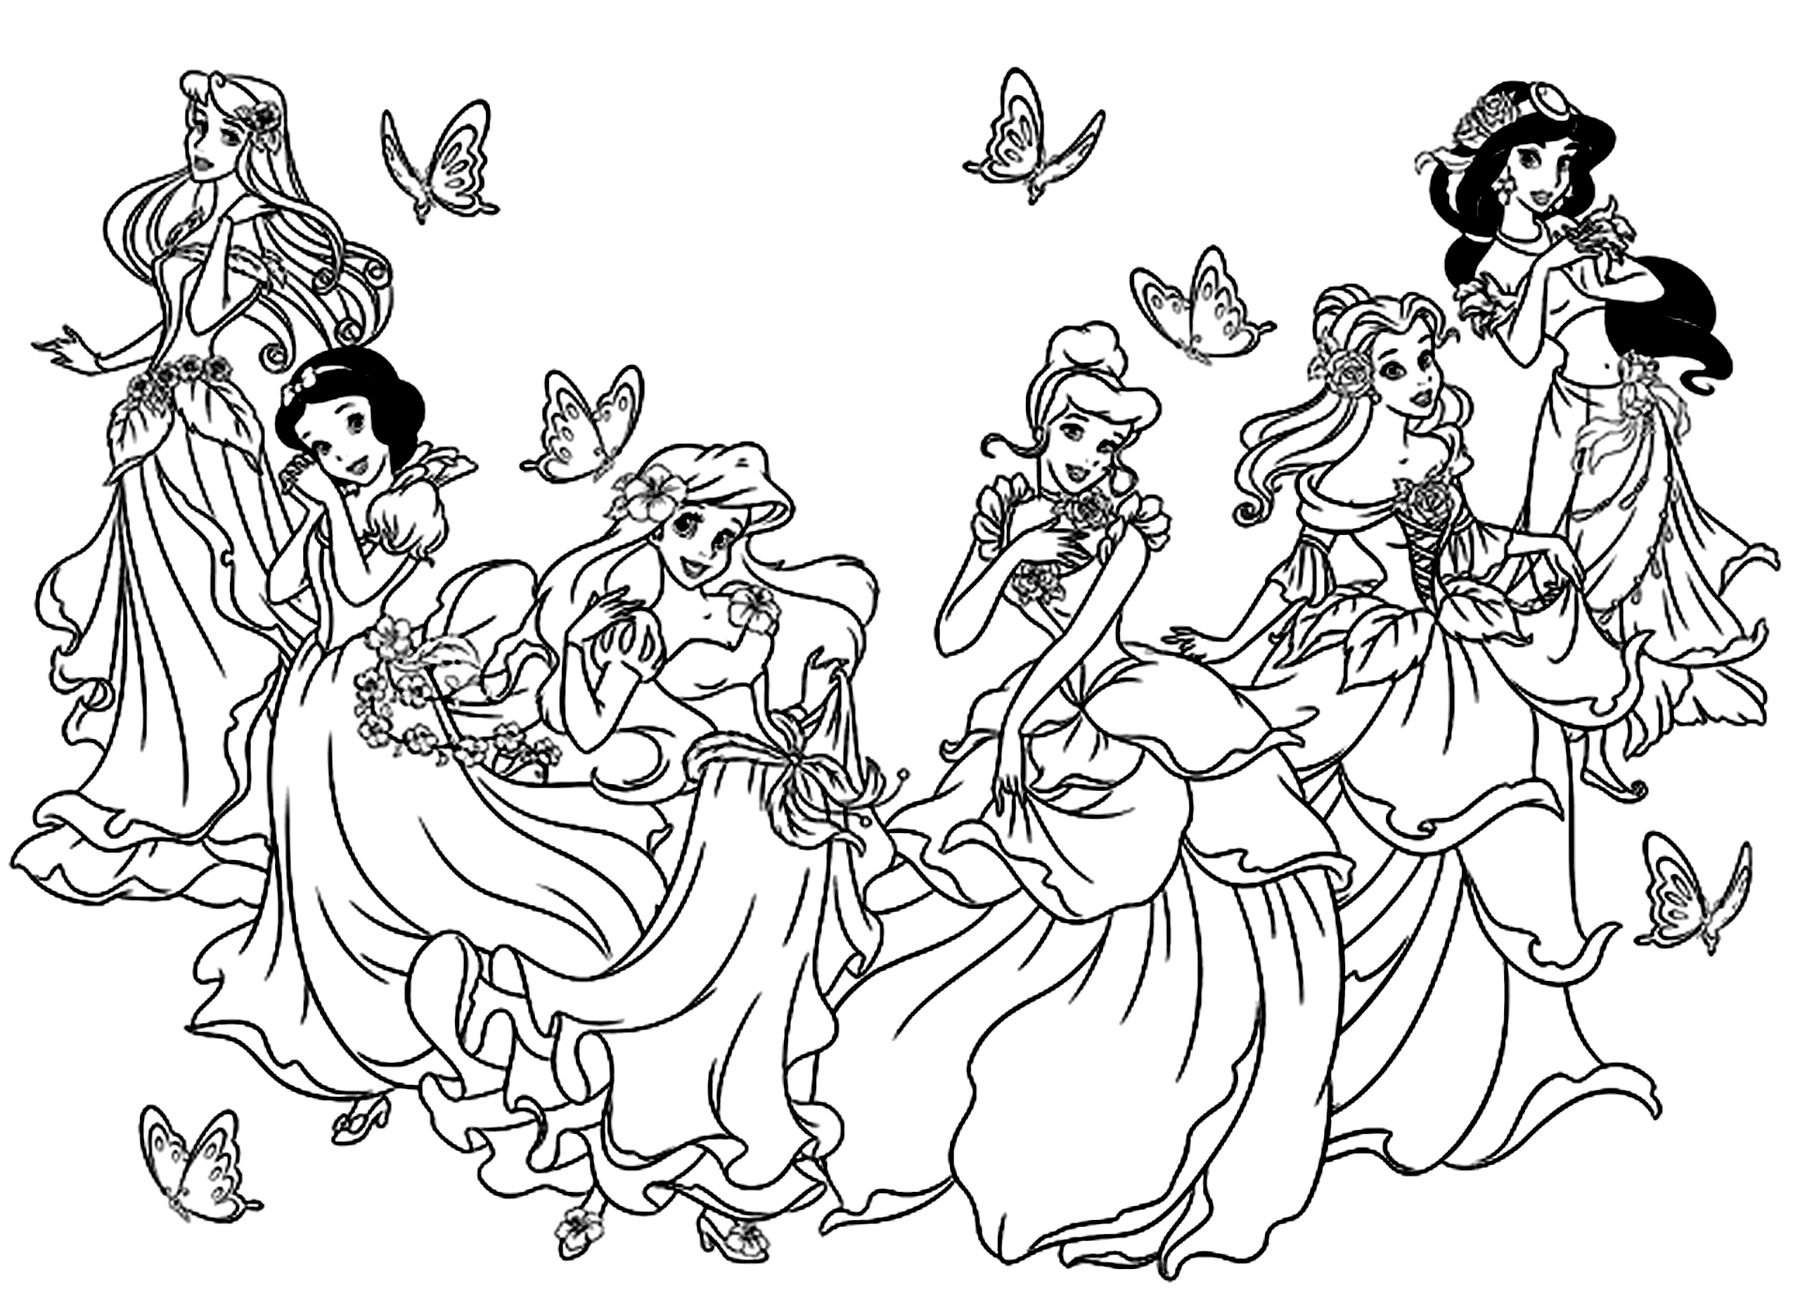 【Plus que 50】 Coloriage De Disney Princesse